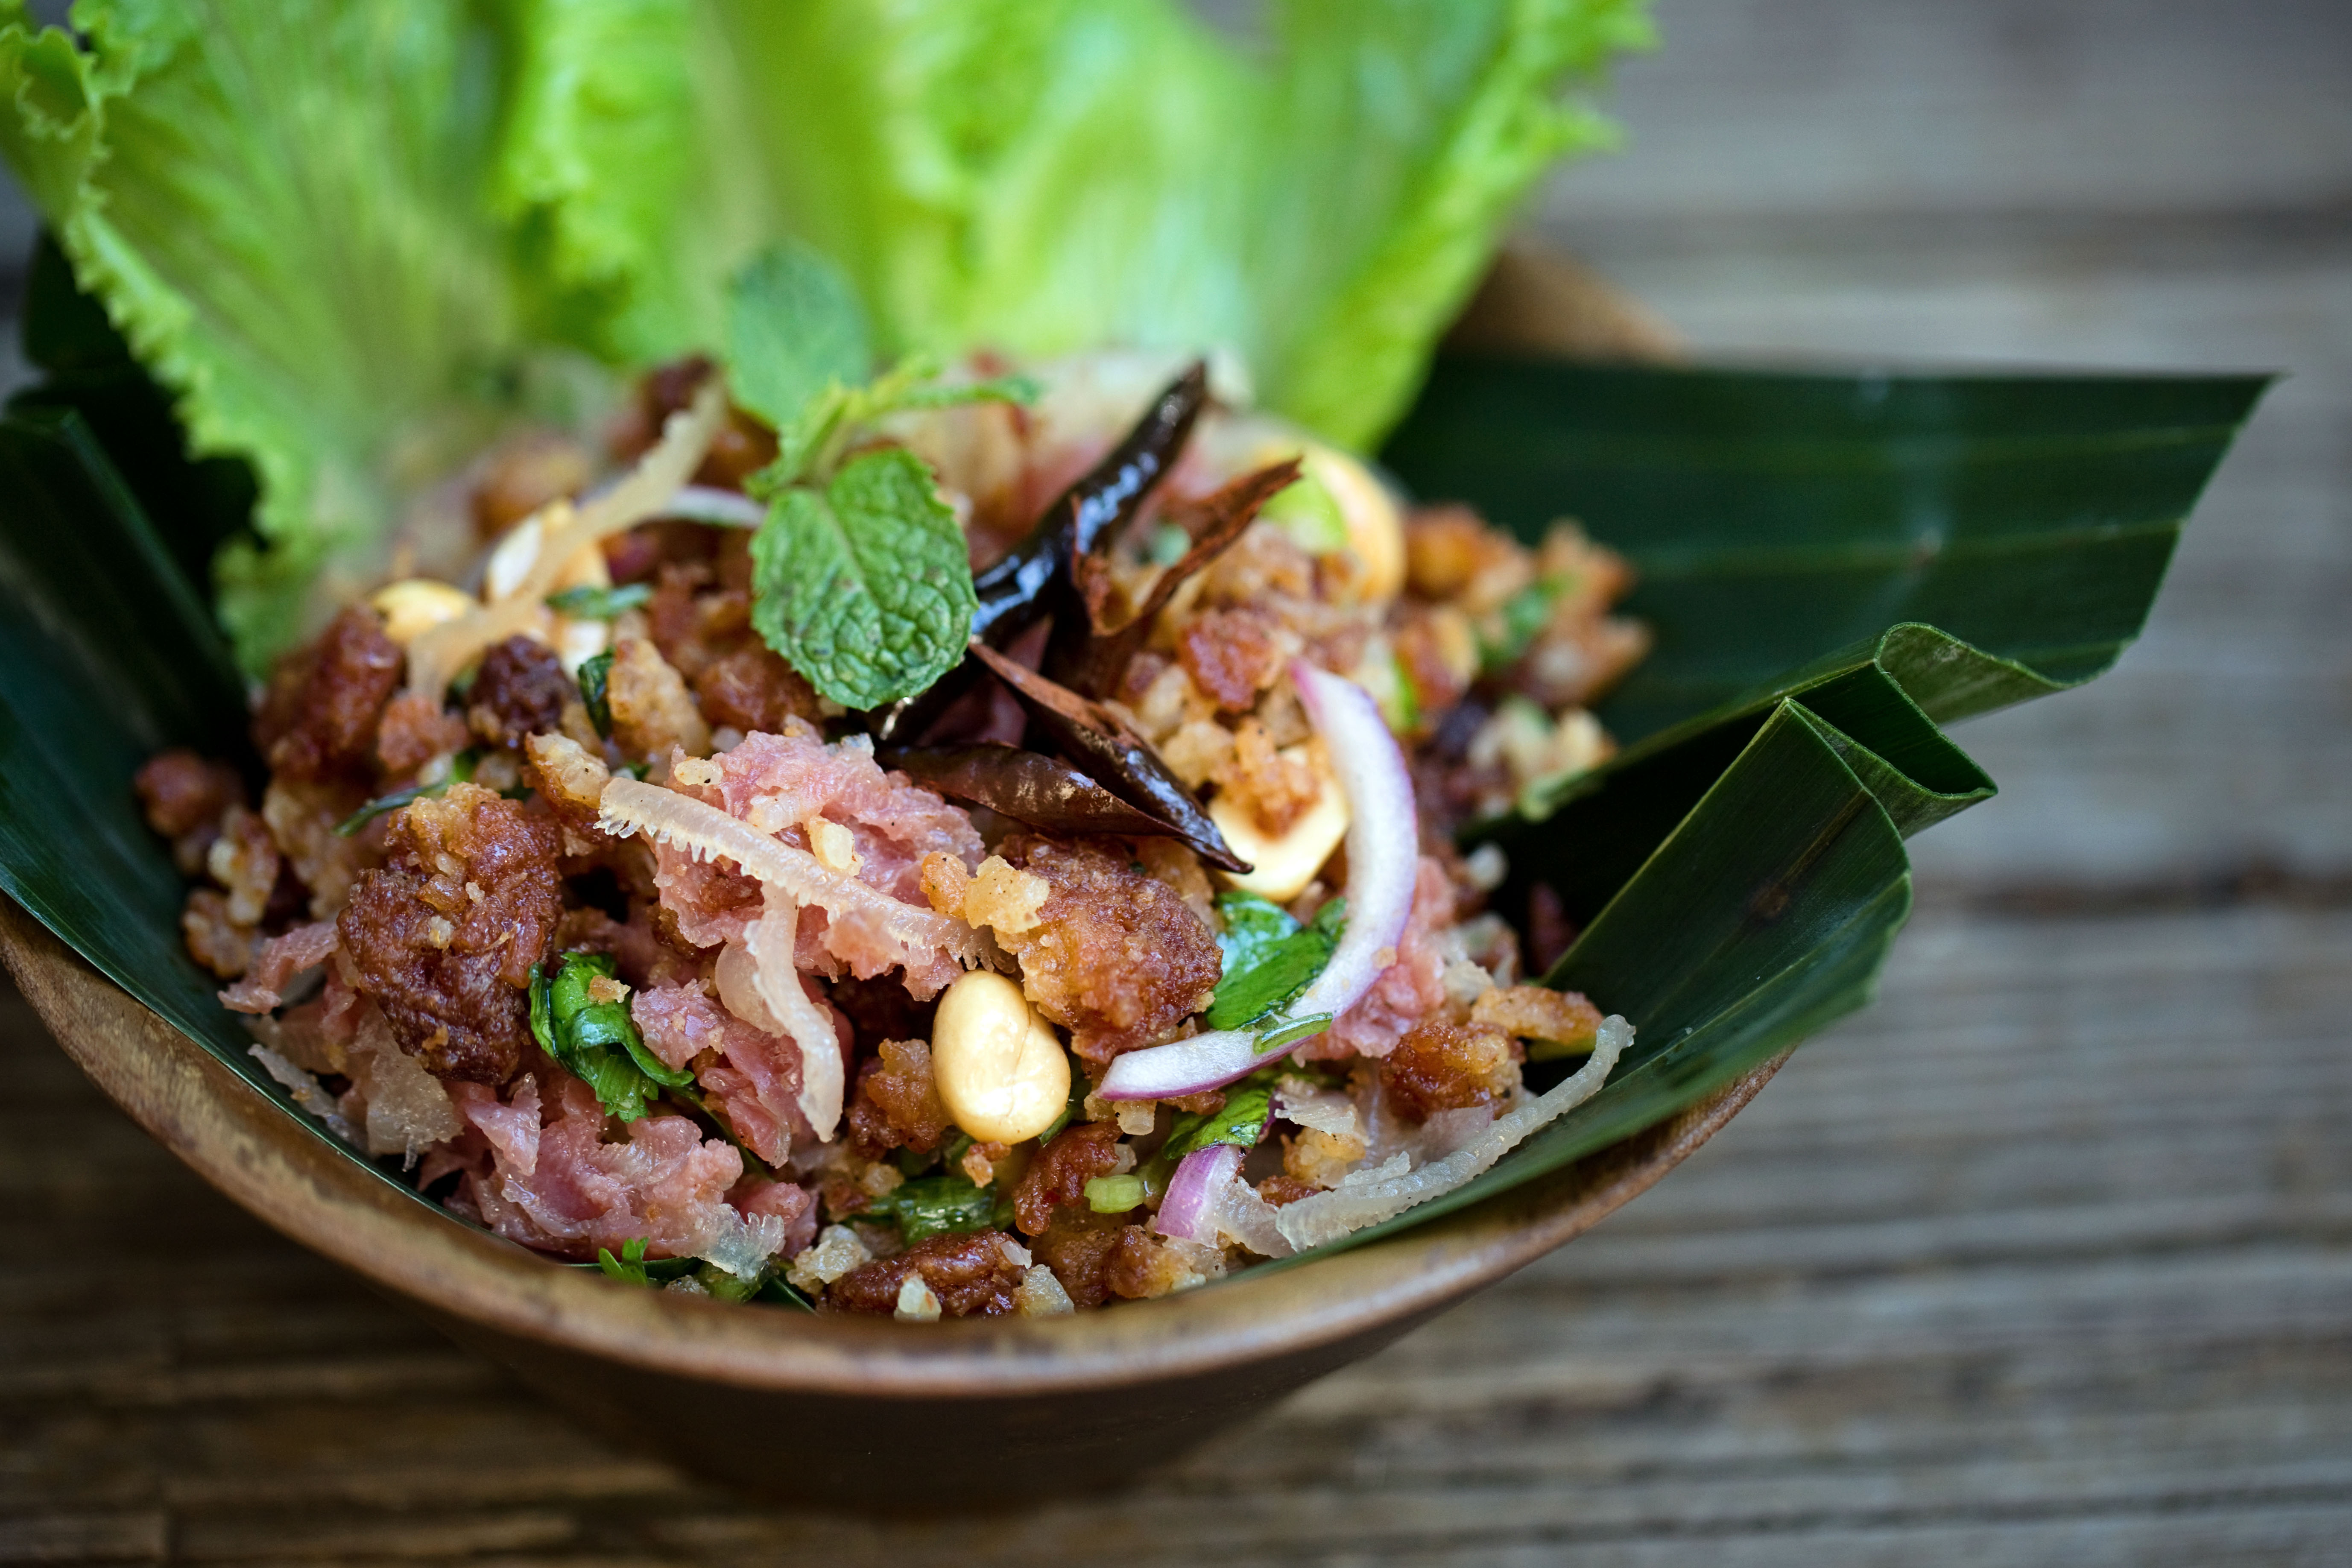 Nam khao or coconut rice salad with fermented pork or tofu at Snackboxe Bistro